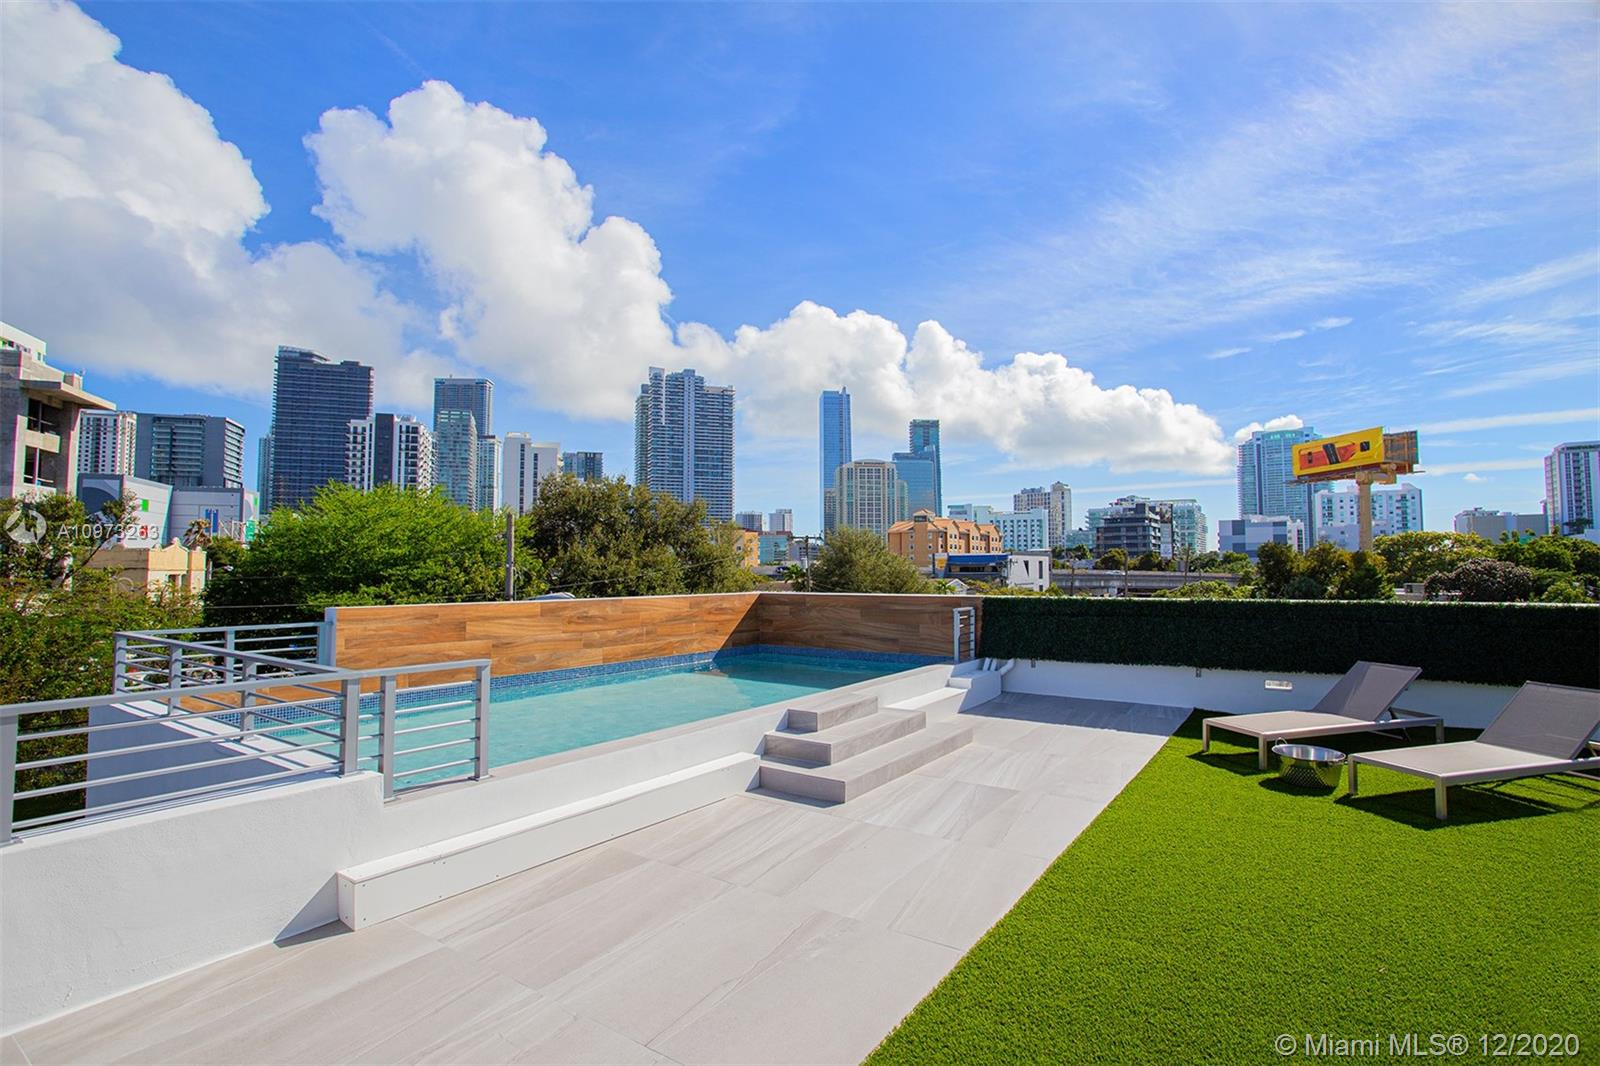 You will fall in love with this luxury 3 bedroom, 4 bathroom home. The new construction features a rooftop pool and deck overlooking the amazing Miami skyline, a 10 person movie theater,  a one car garage, a luxury gourmet kitchen, and a tropical-modern design throughout!  The amazing master bedroom contains his/her oversized closets & the bathroom of your dreams! All of this situated in a central, friendly neighborhood with outstanding schools and restaurants.